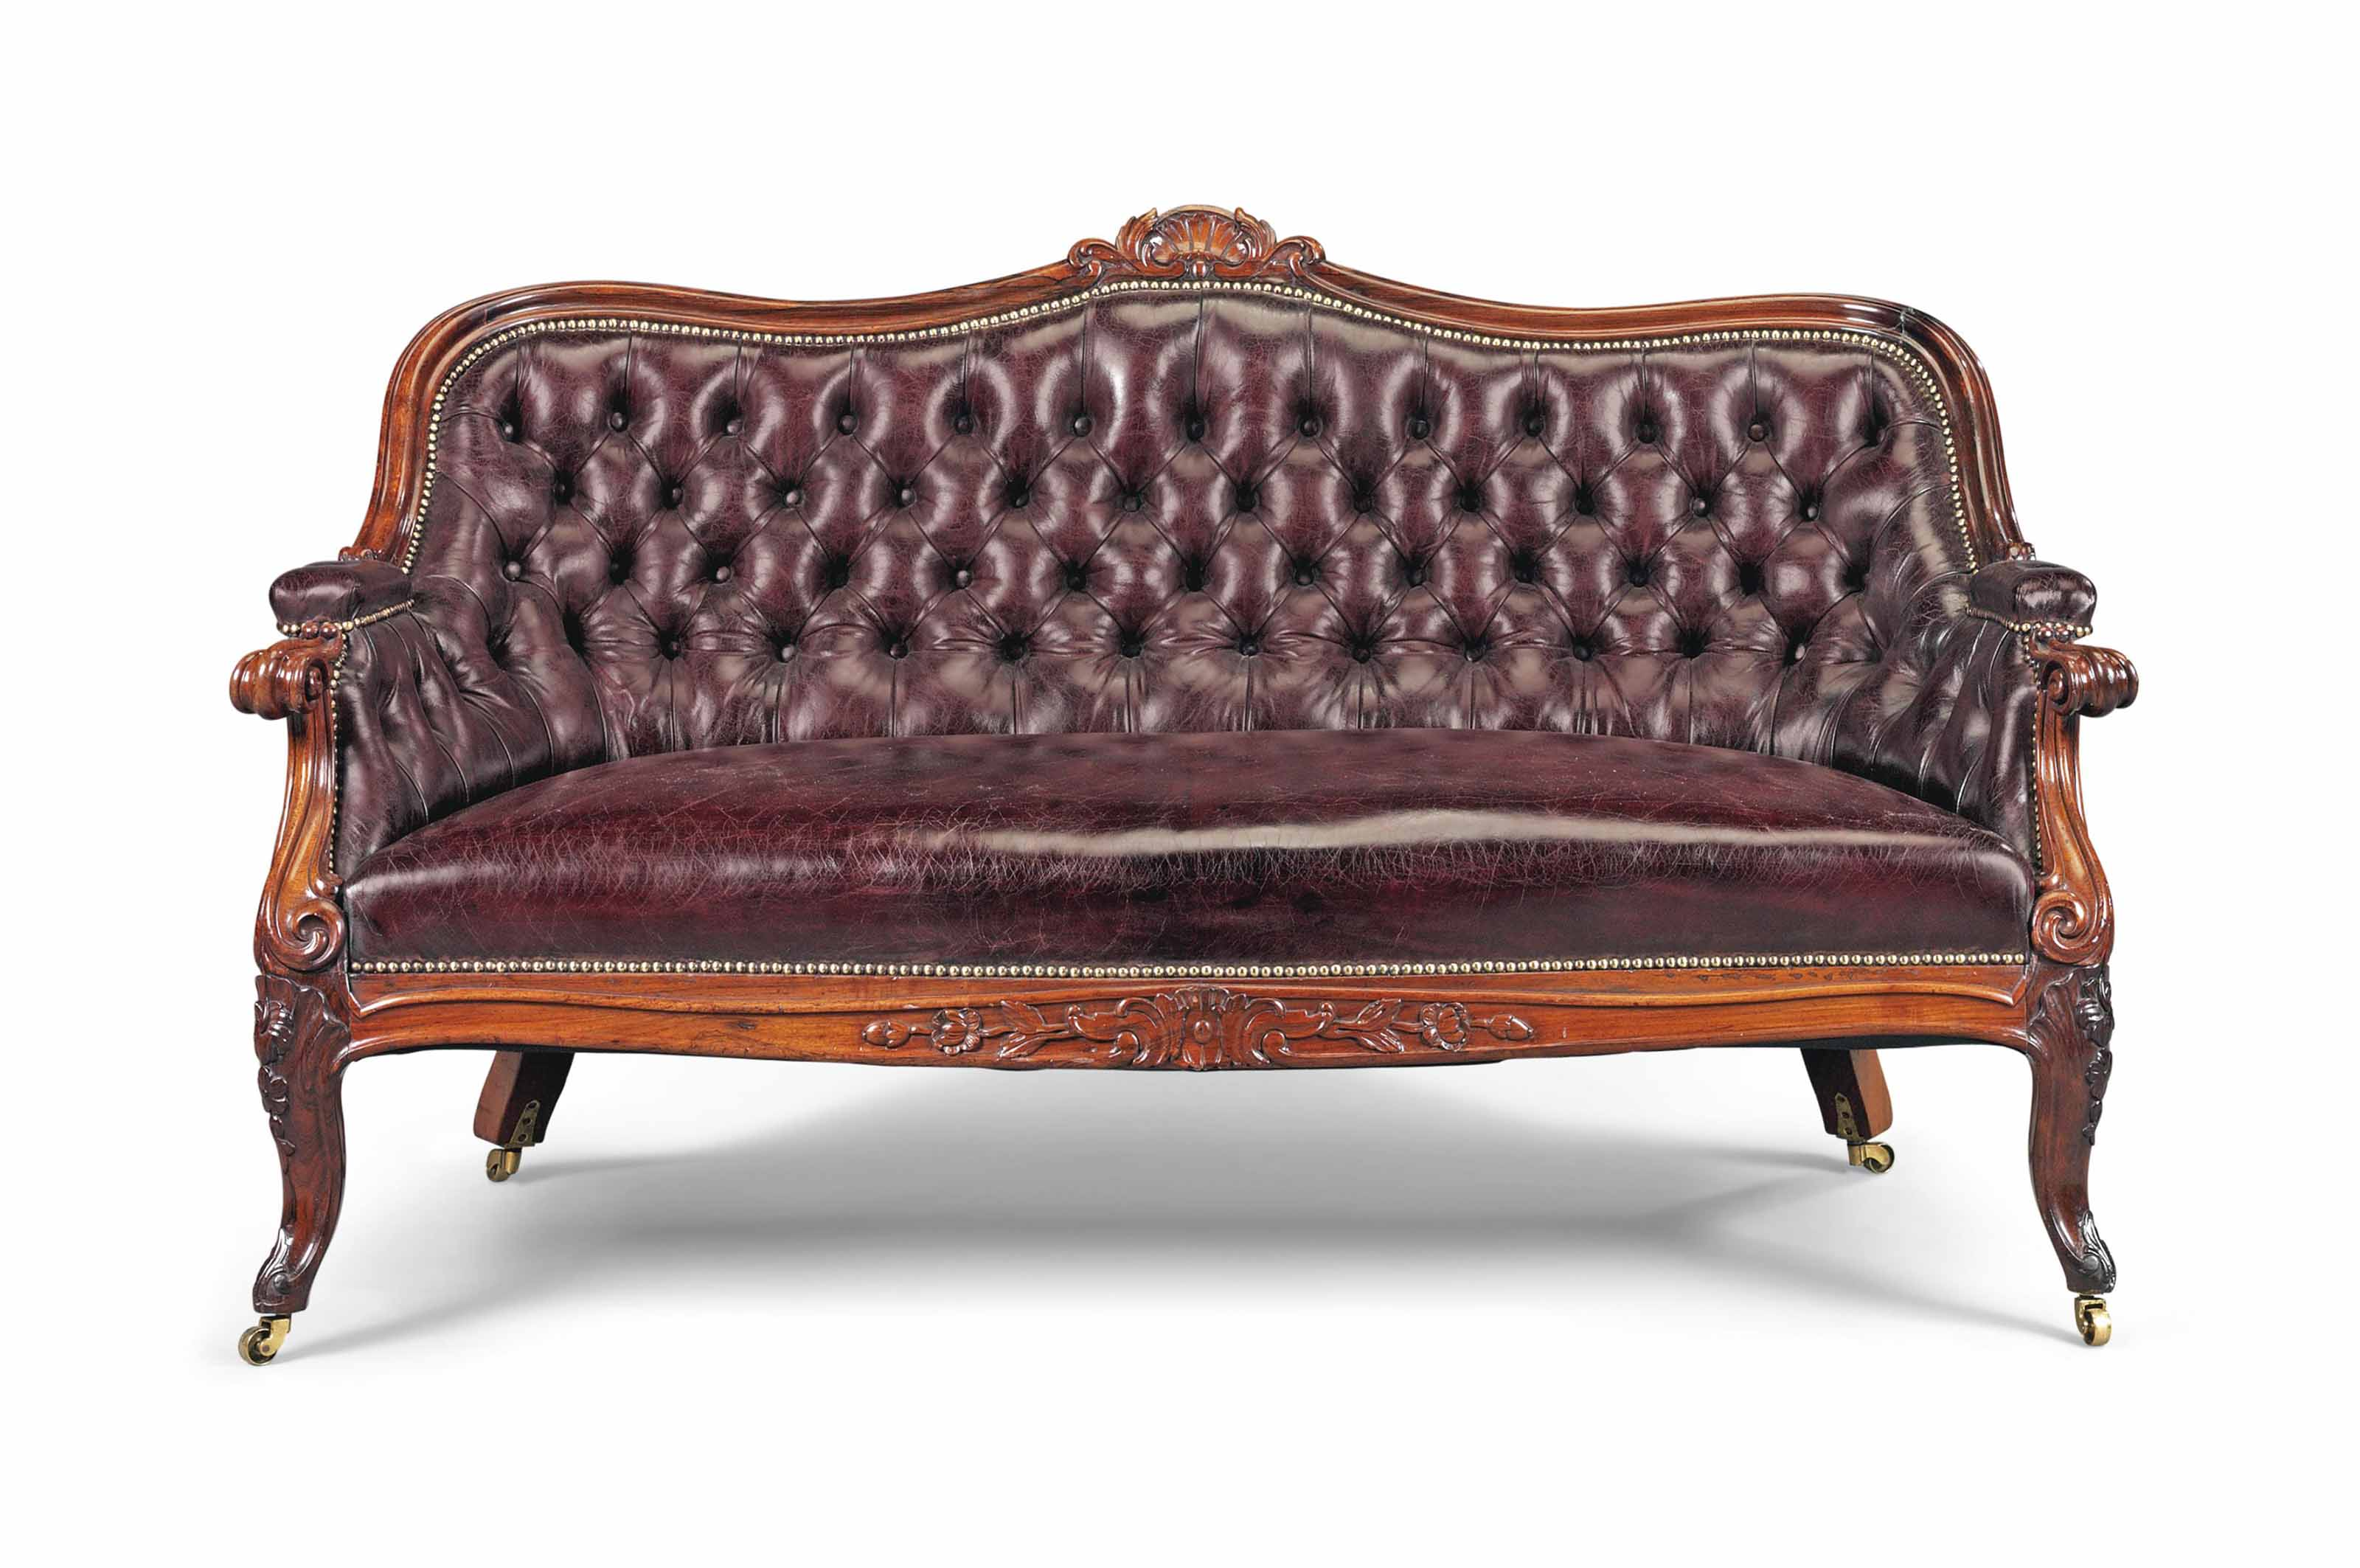 sofa rose wood brown leather sectional sofas a victorian rosewood serpentine third quarter 19th